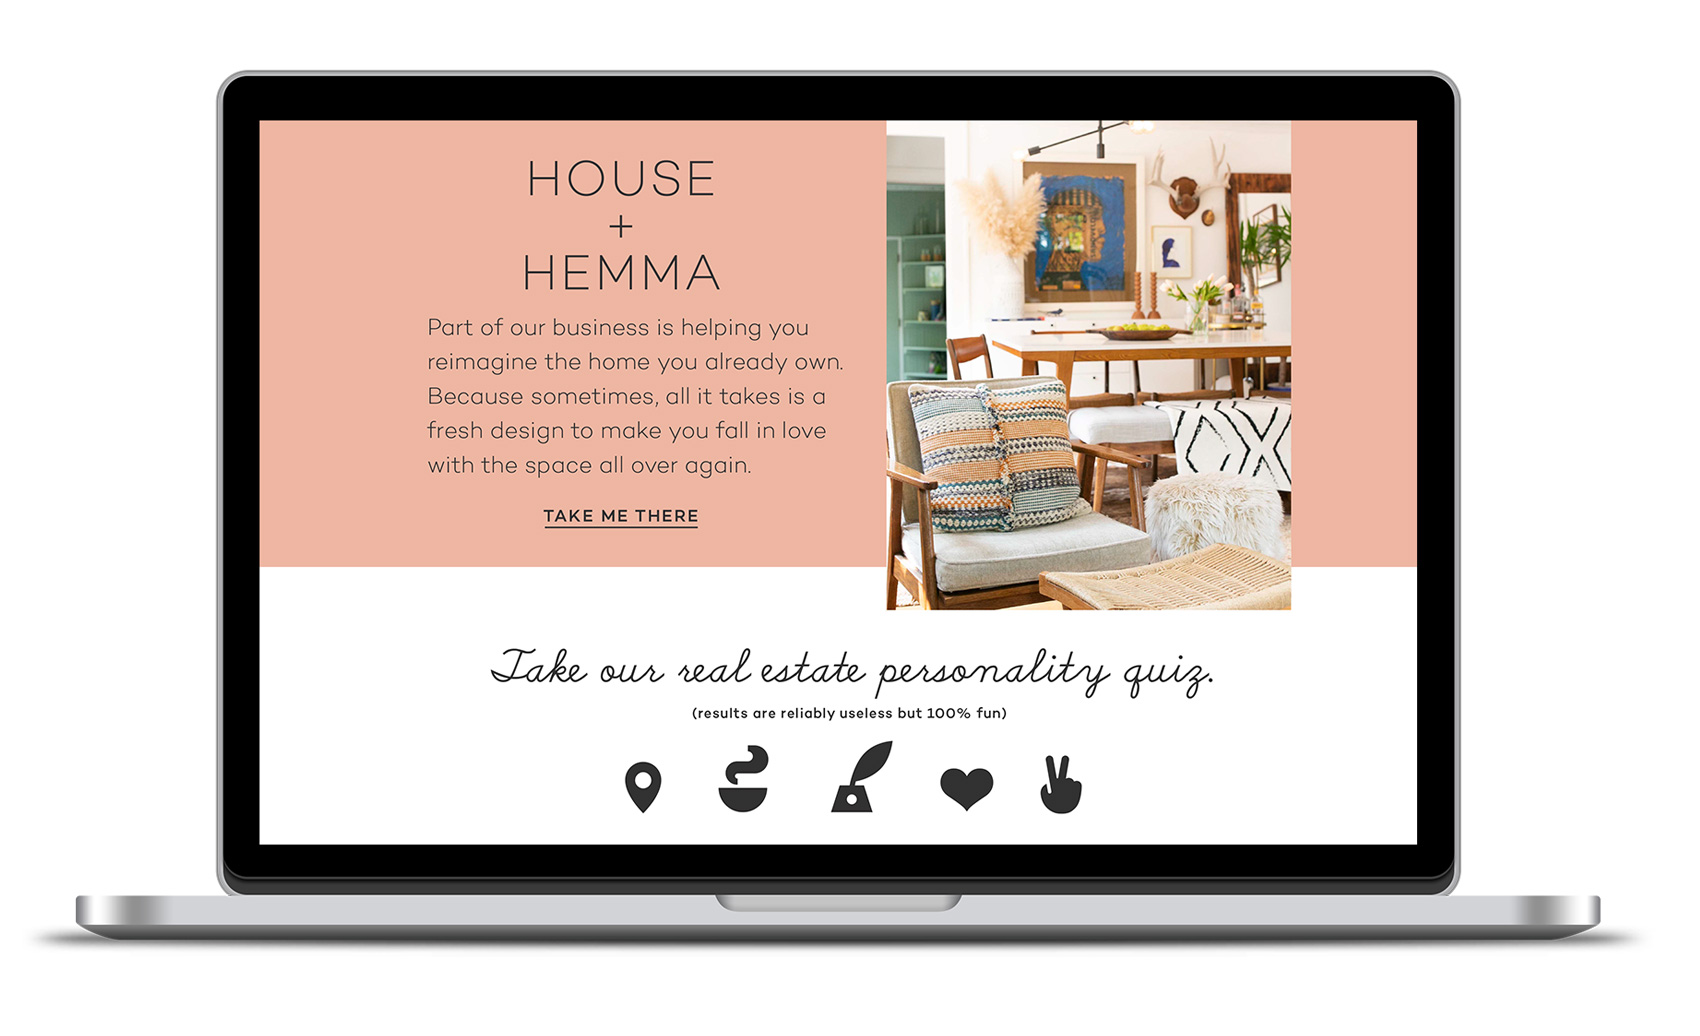 Friday and Company website - House + Hemma. Taking a holistic approach, design and staging is integrated into their realty business.